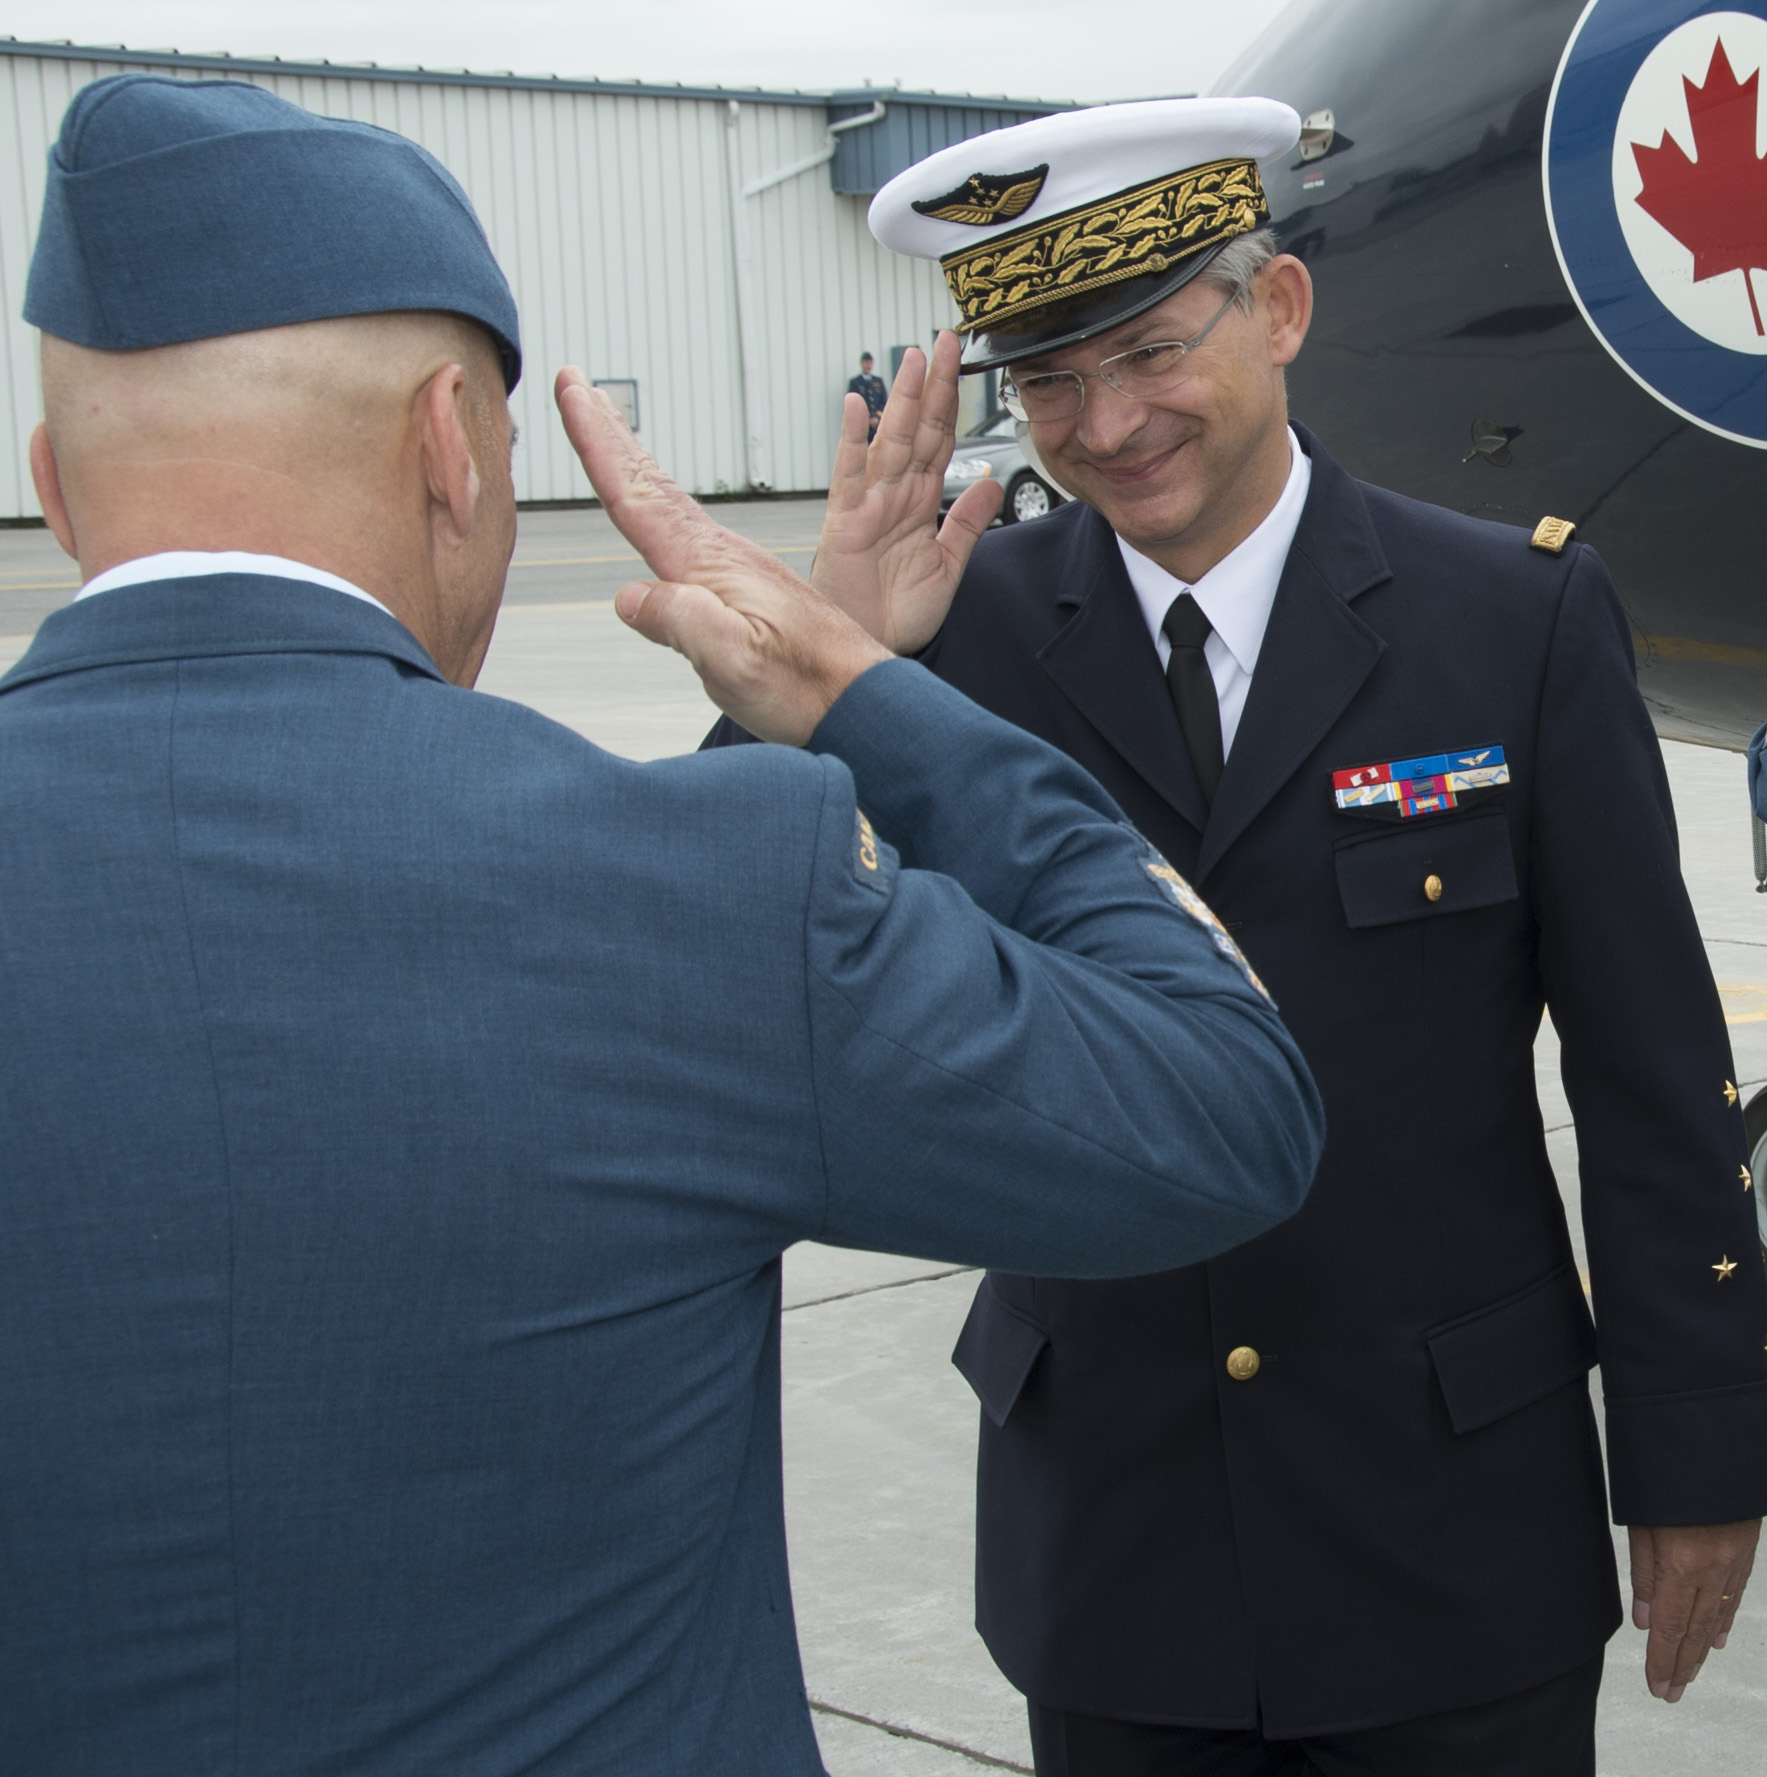 Article | Royal Canadian Air Force | News Article | French and ...